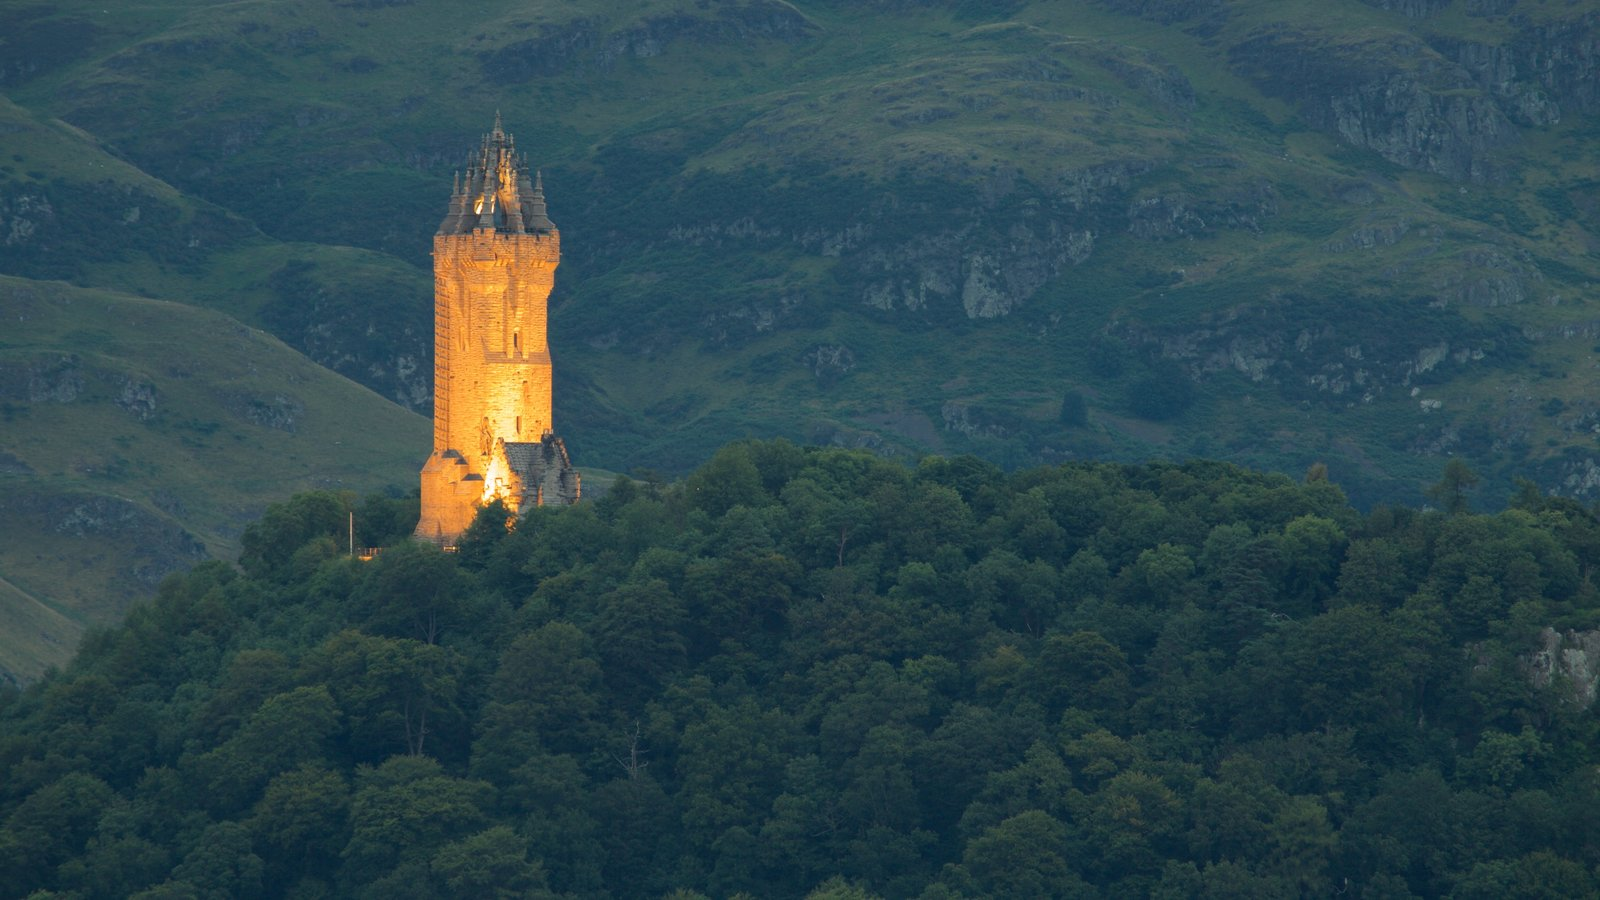 National Wallace Monument which includes night scenes, a monument and forests